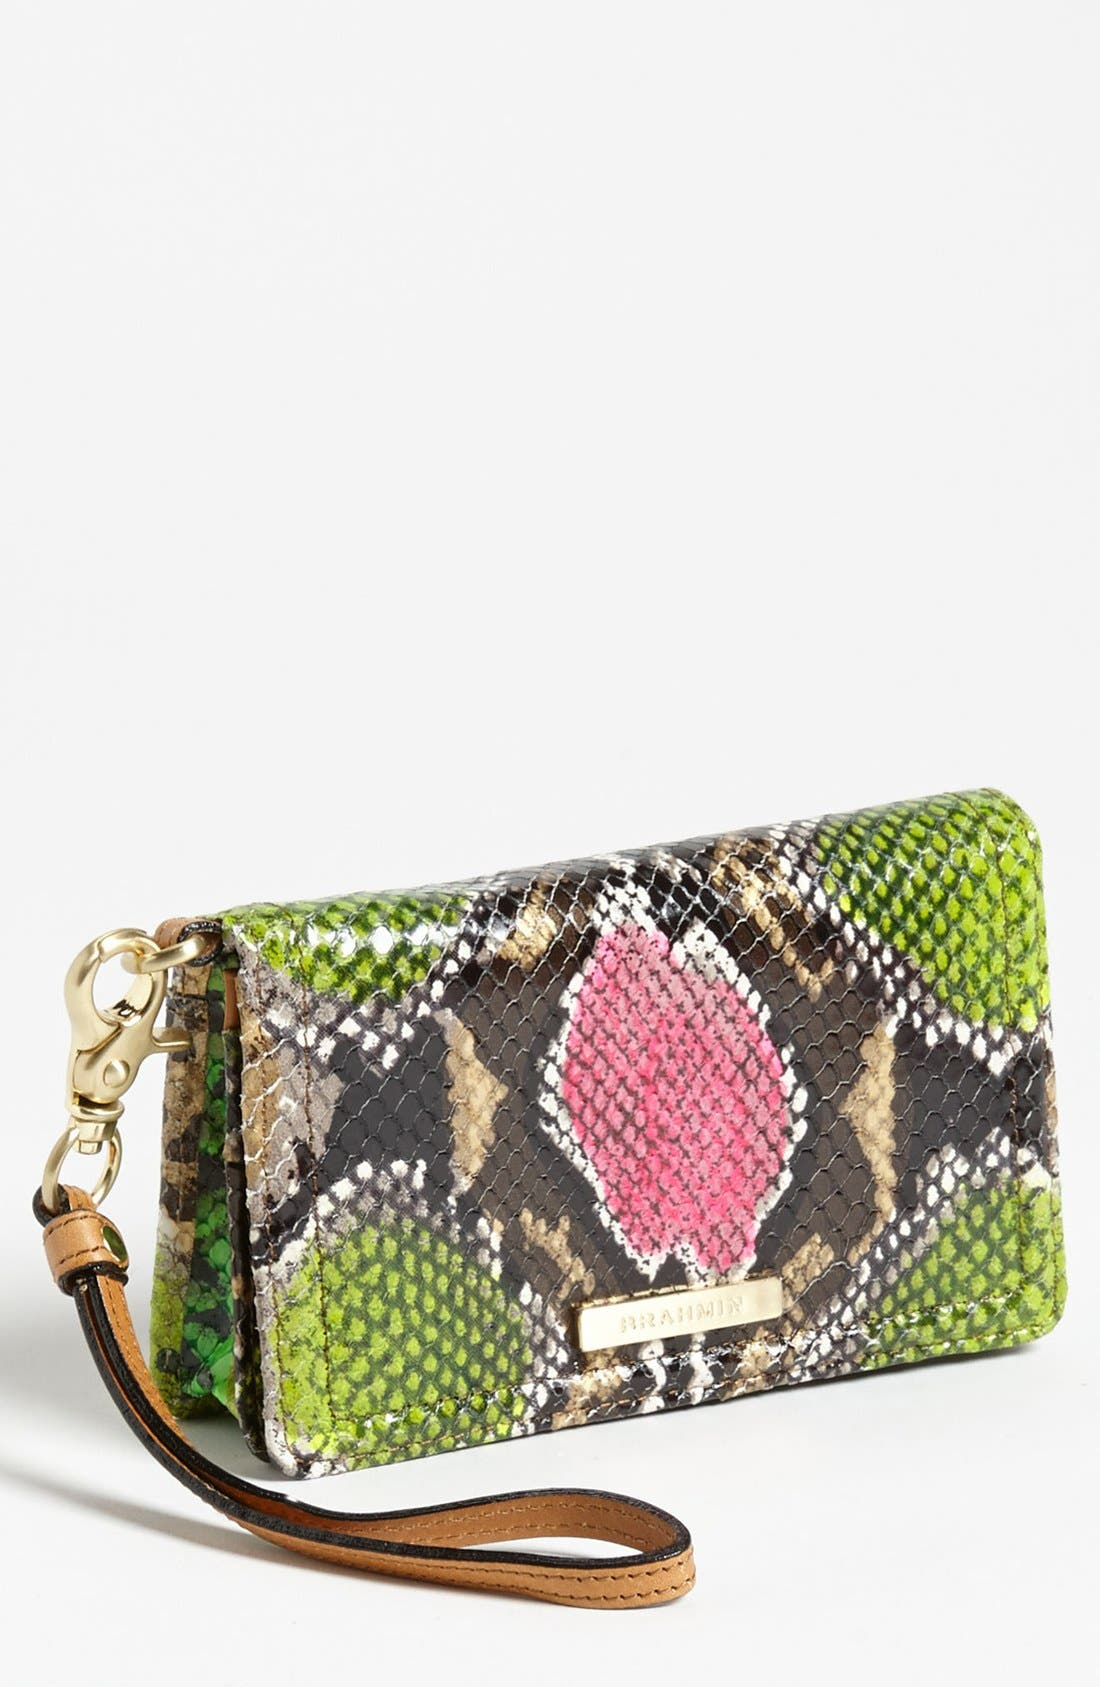 Alternate Image 1 Selected - Brahmin 'Debi' Anaconda Embossed Leather Wristlet